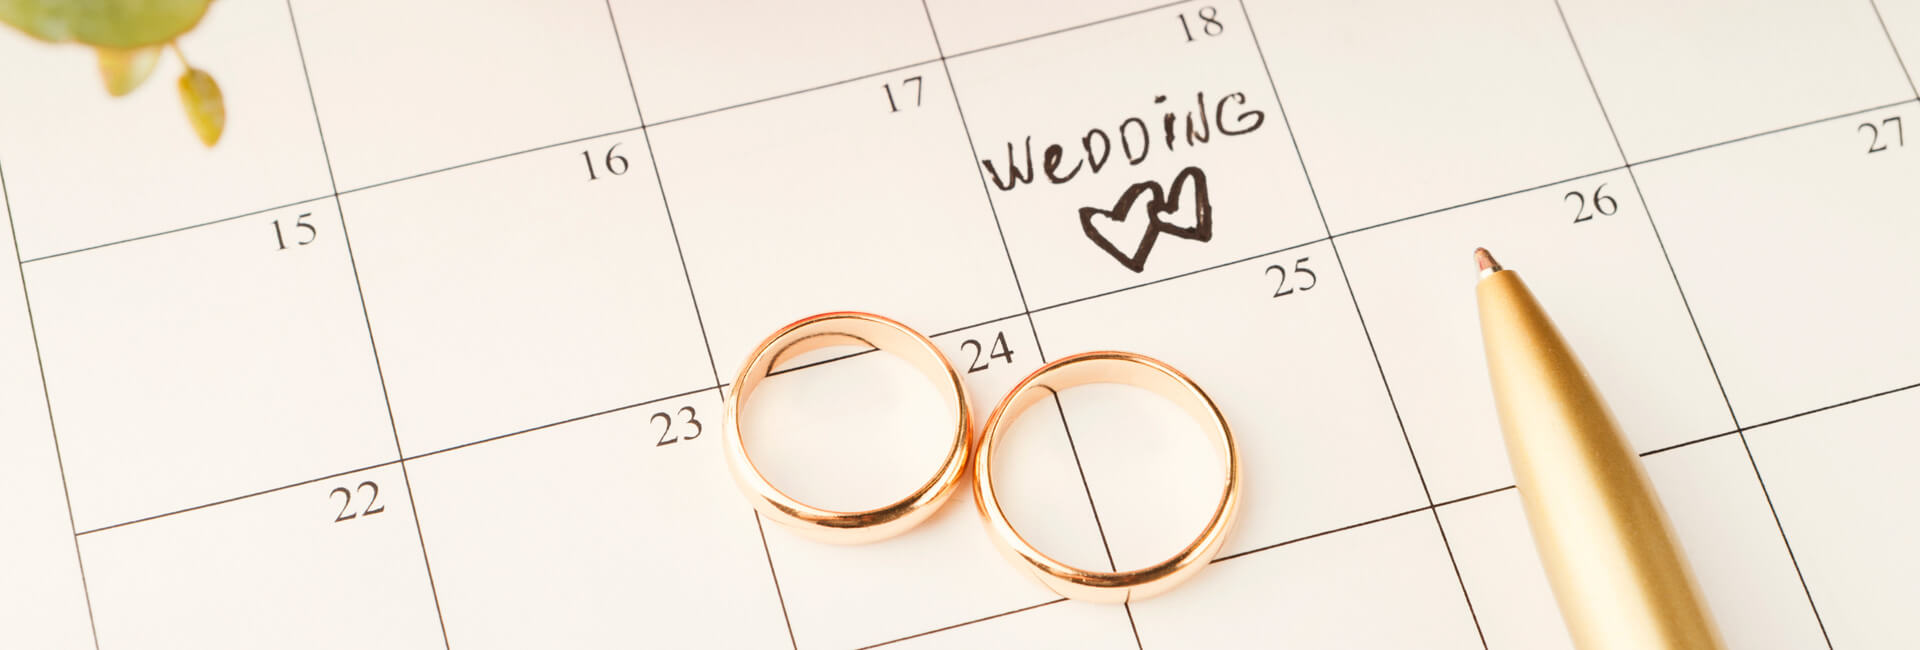 List of Wedding Roles